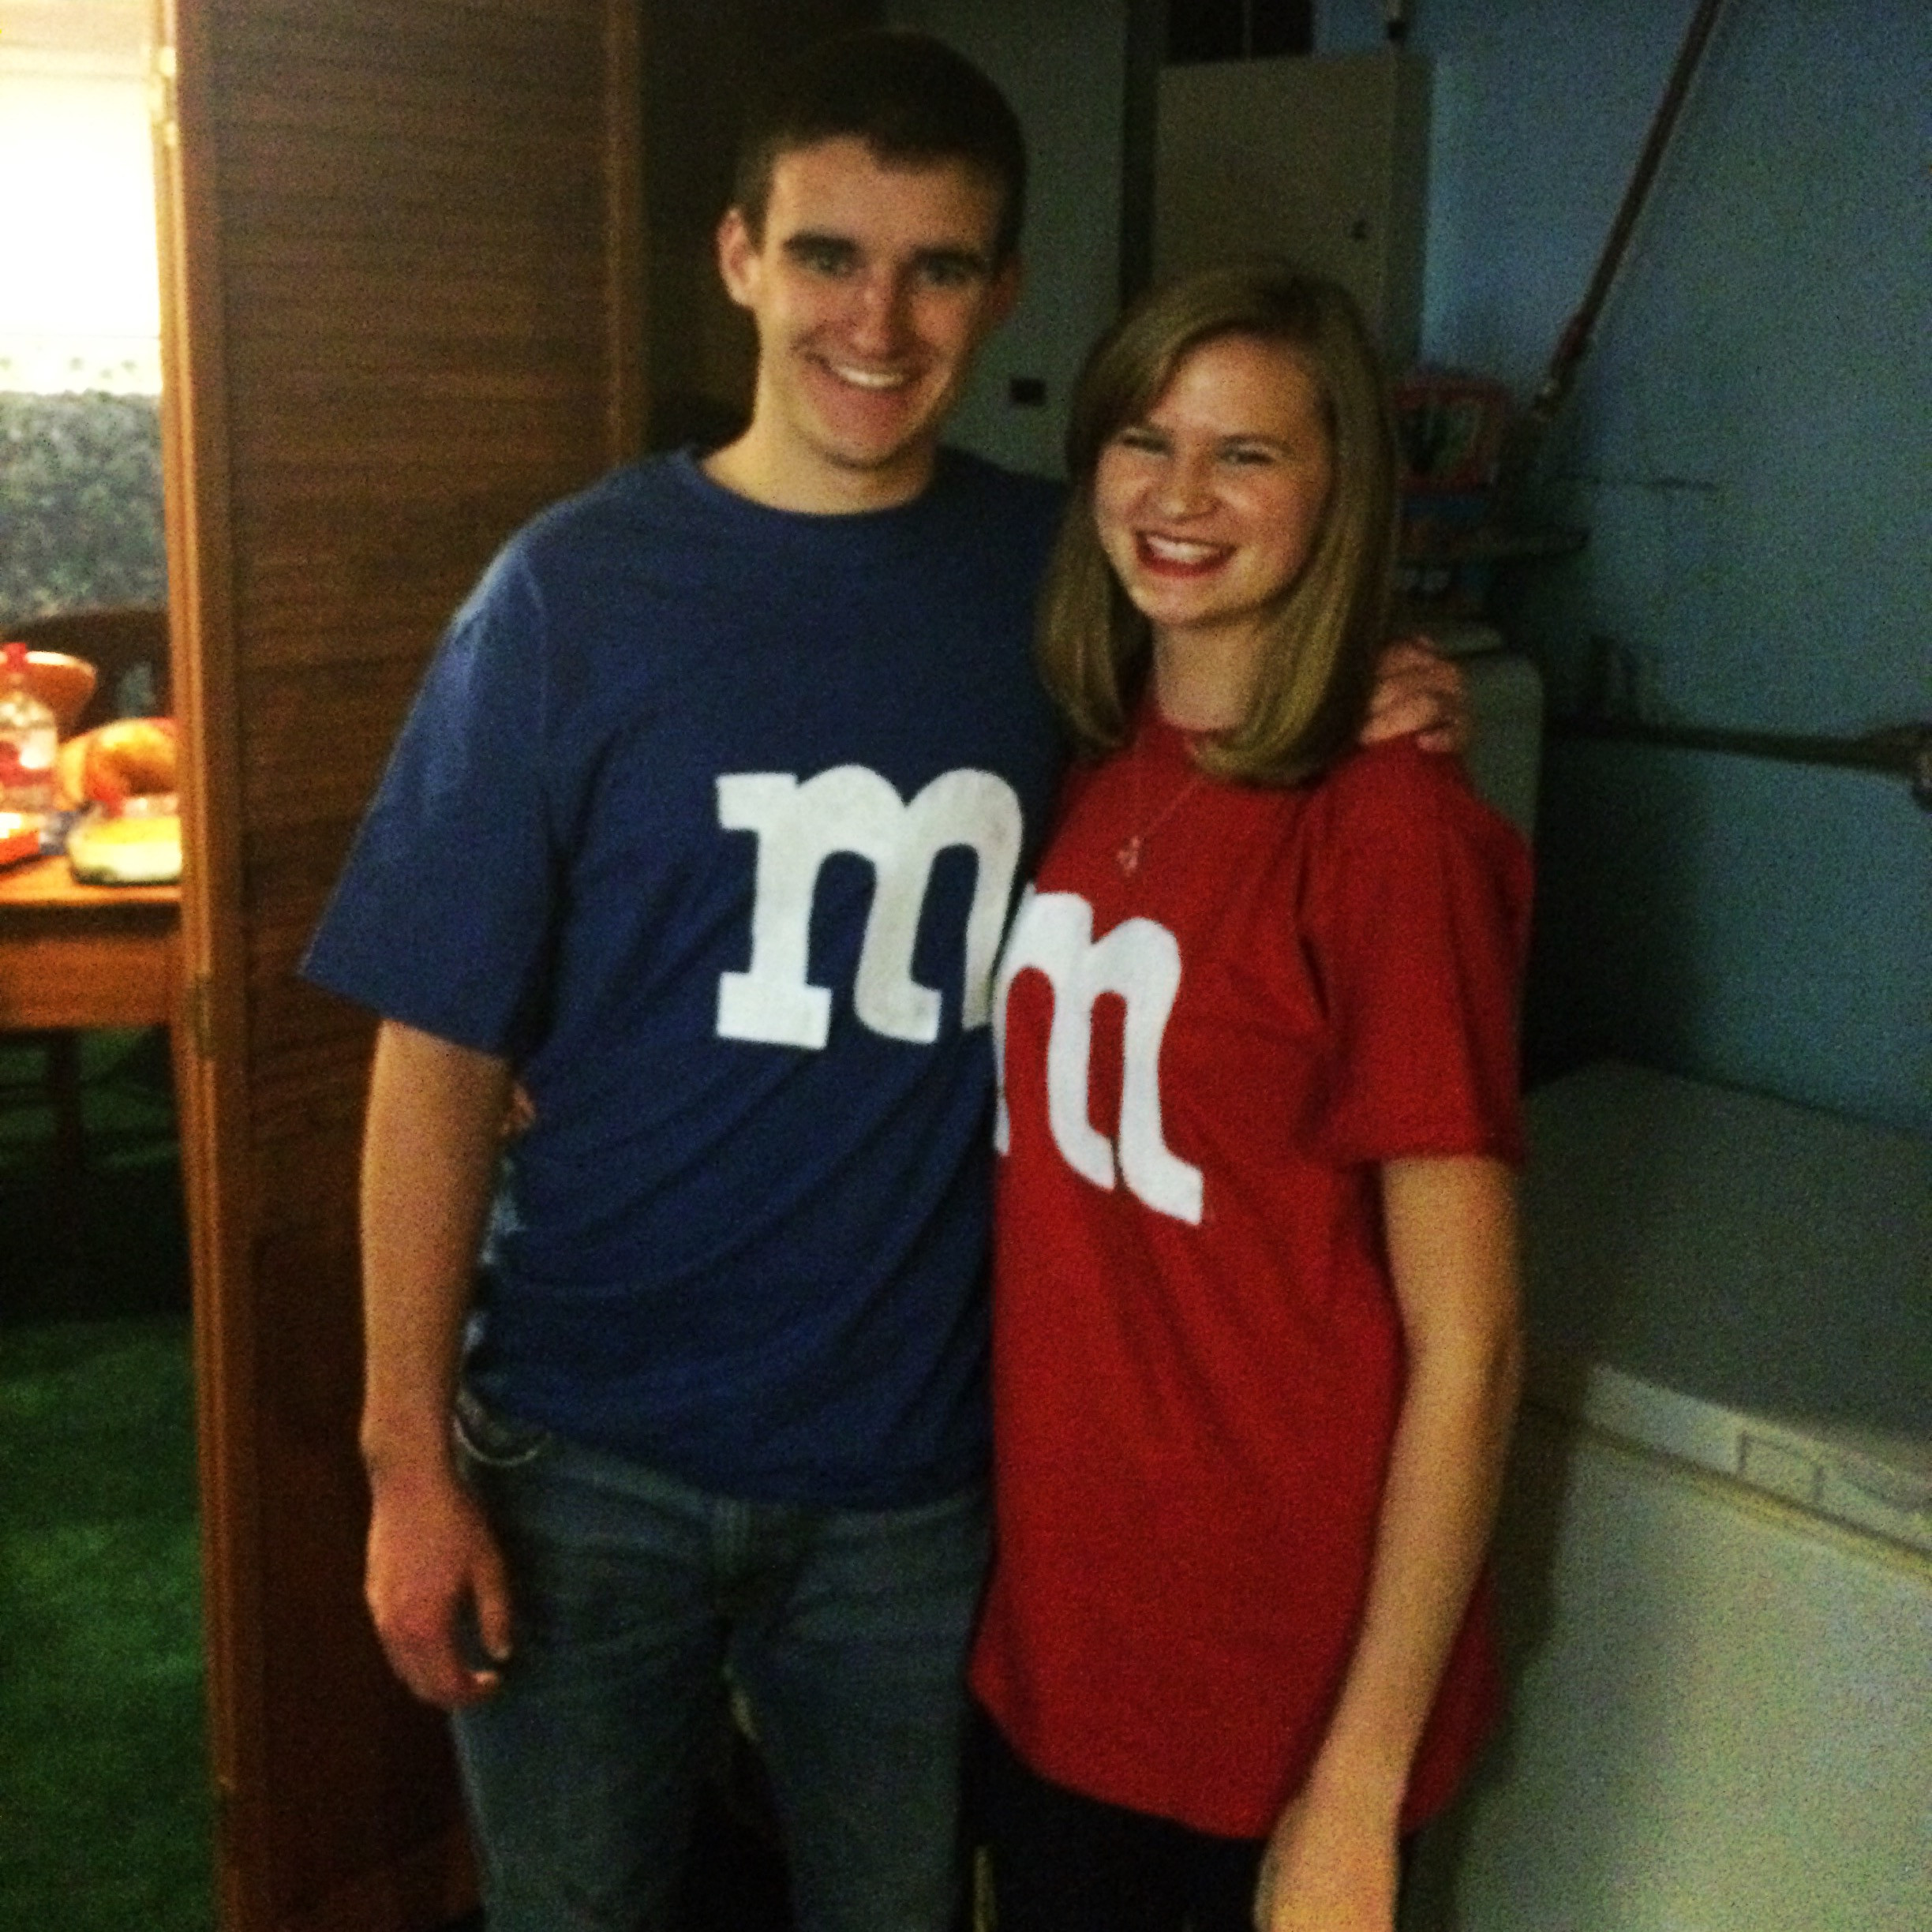 Best ideas about DIY M&M Costume . Save or Pin DIY Couples M&M Costume Now.